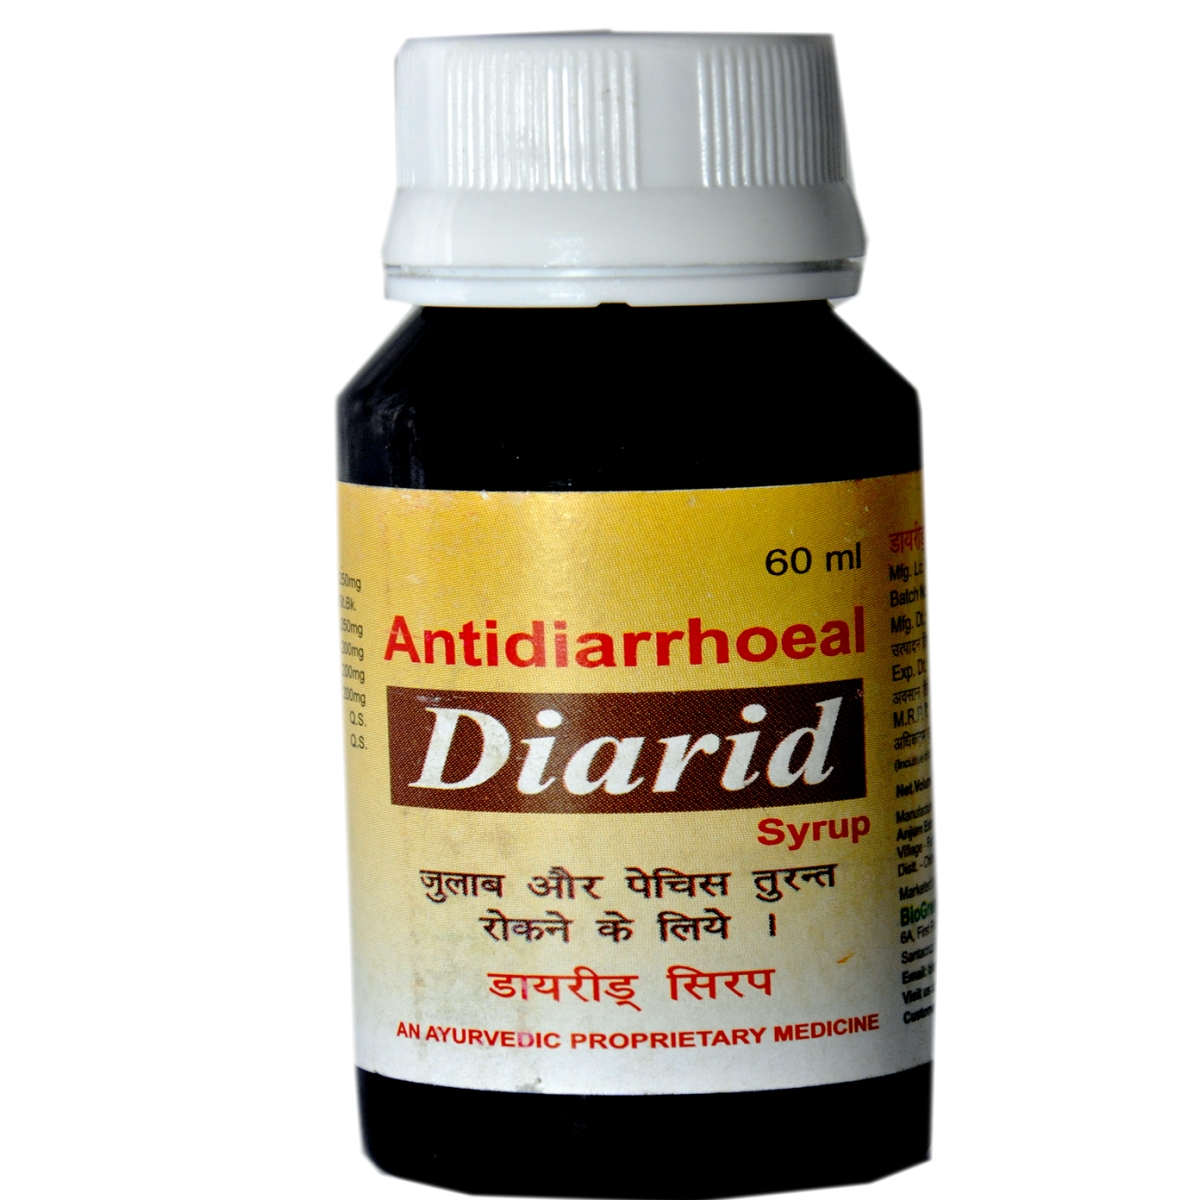 Diarid Syrup In Panchmahal